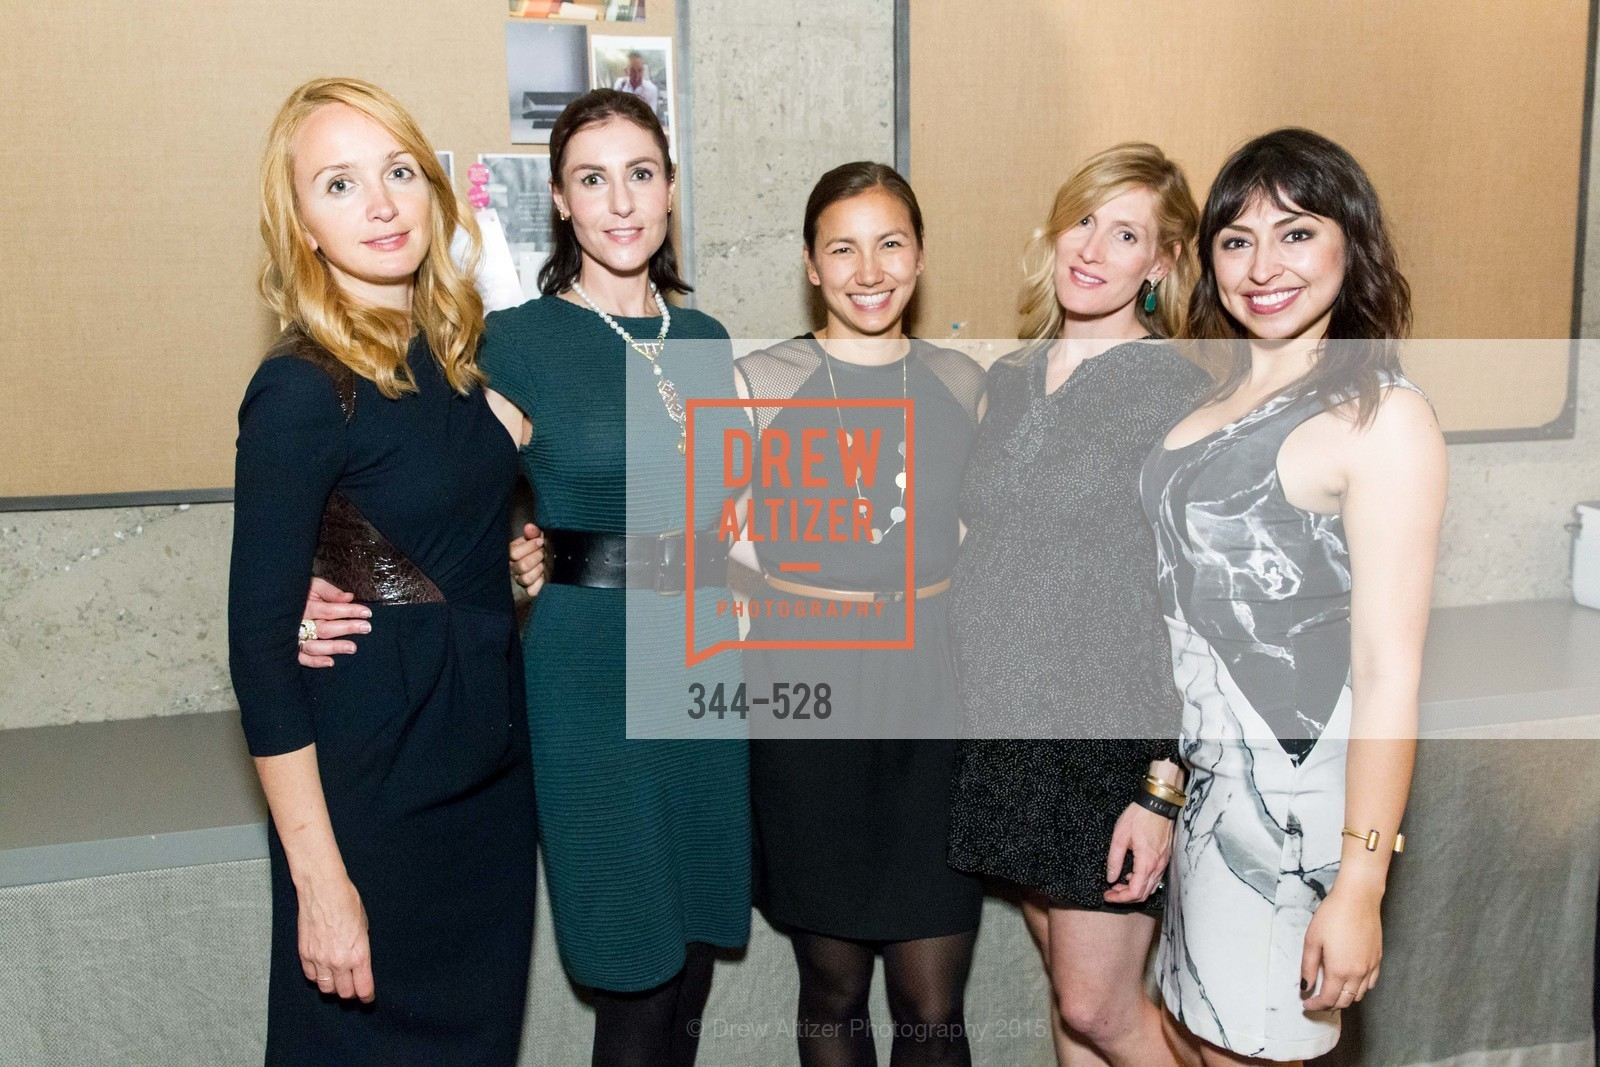 Victoria Nady, Kat Daley, Jessica McLean, Molly Hildebrand, Gabriela Marmolejo, Jay Jeffers for Arteriors Launch, Jay Jeffers - The Store. 1035 Post St, November 12th, 2015,Drew Altizer, Drew Altizer Photography, full-service agency, private events, San Francisco photographer, photographer california